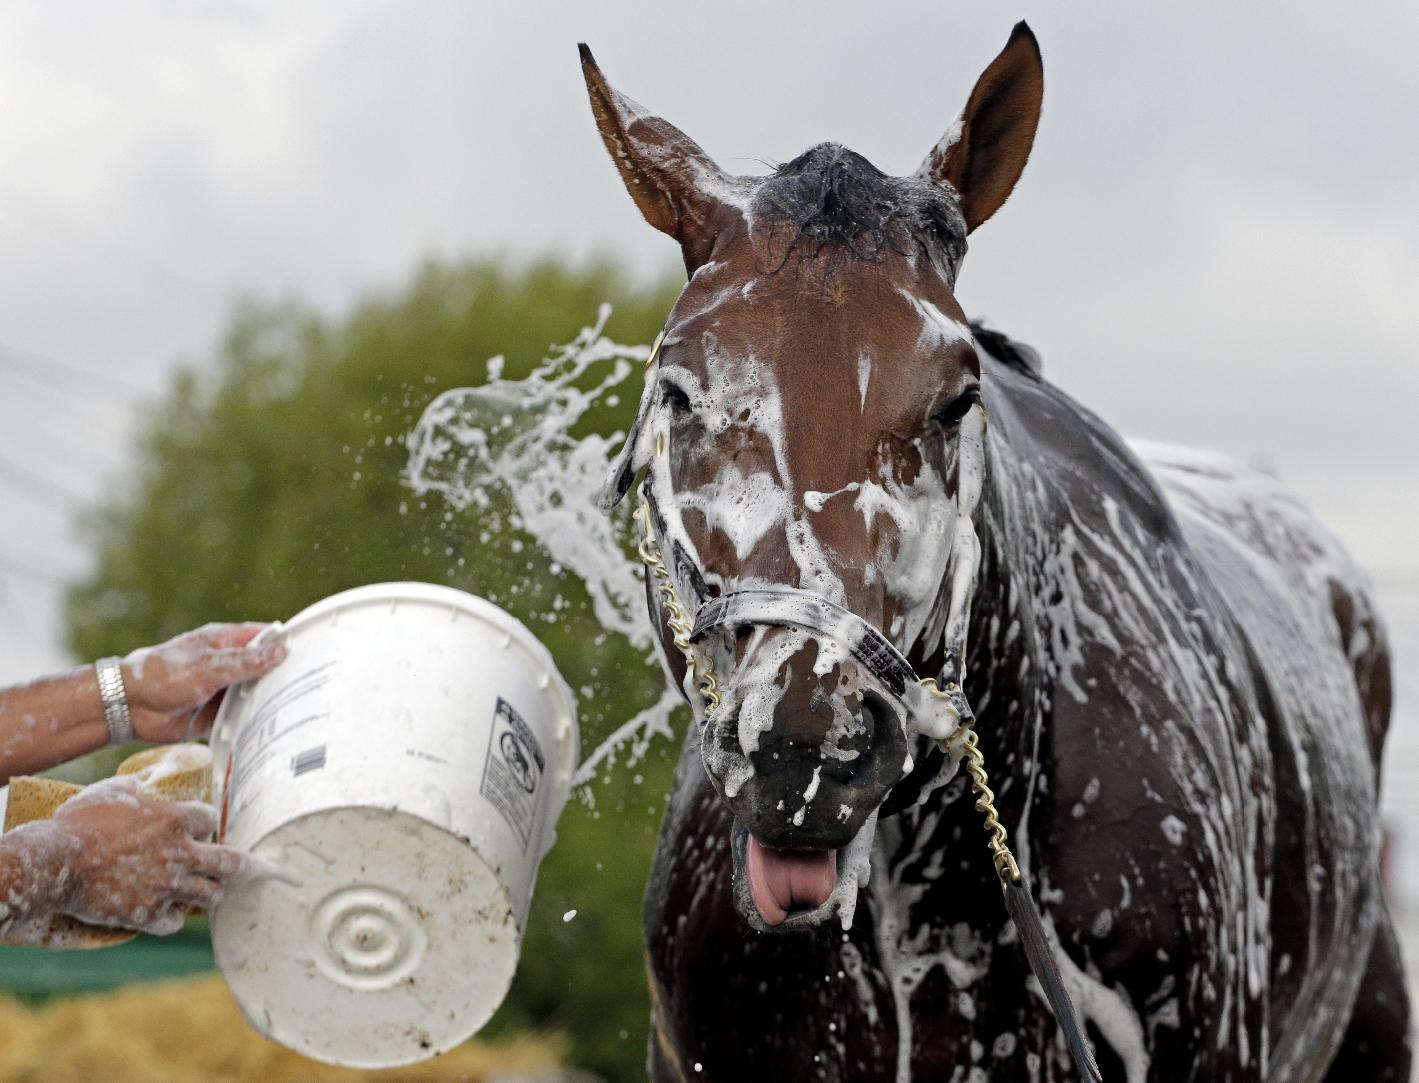 Kentucky Derby hopeful Candy Boy gets a bath after a morning workout at Churchill Downs Tuesday, April 29, 2014, in Louisville, Ky